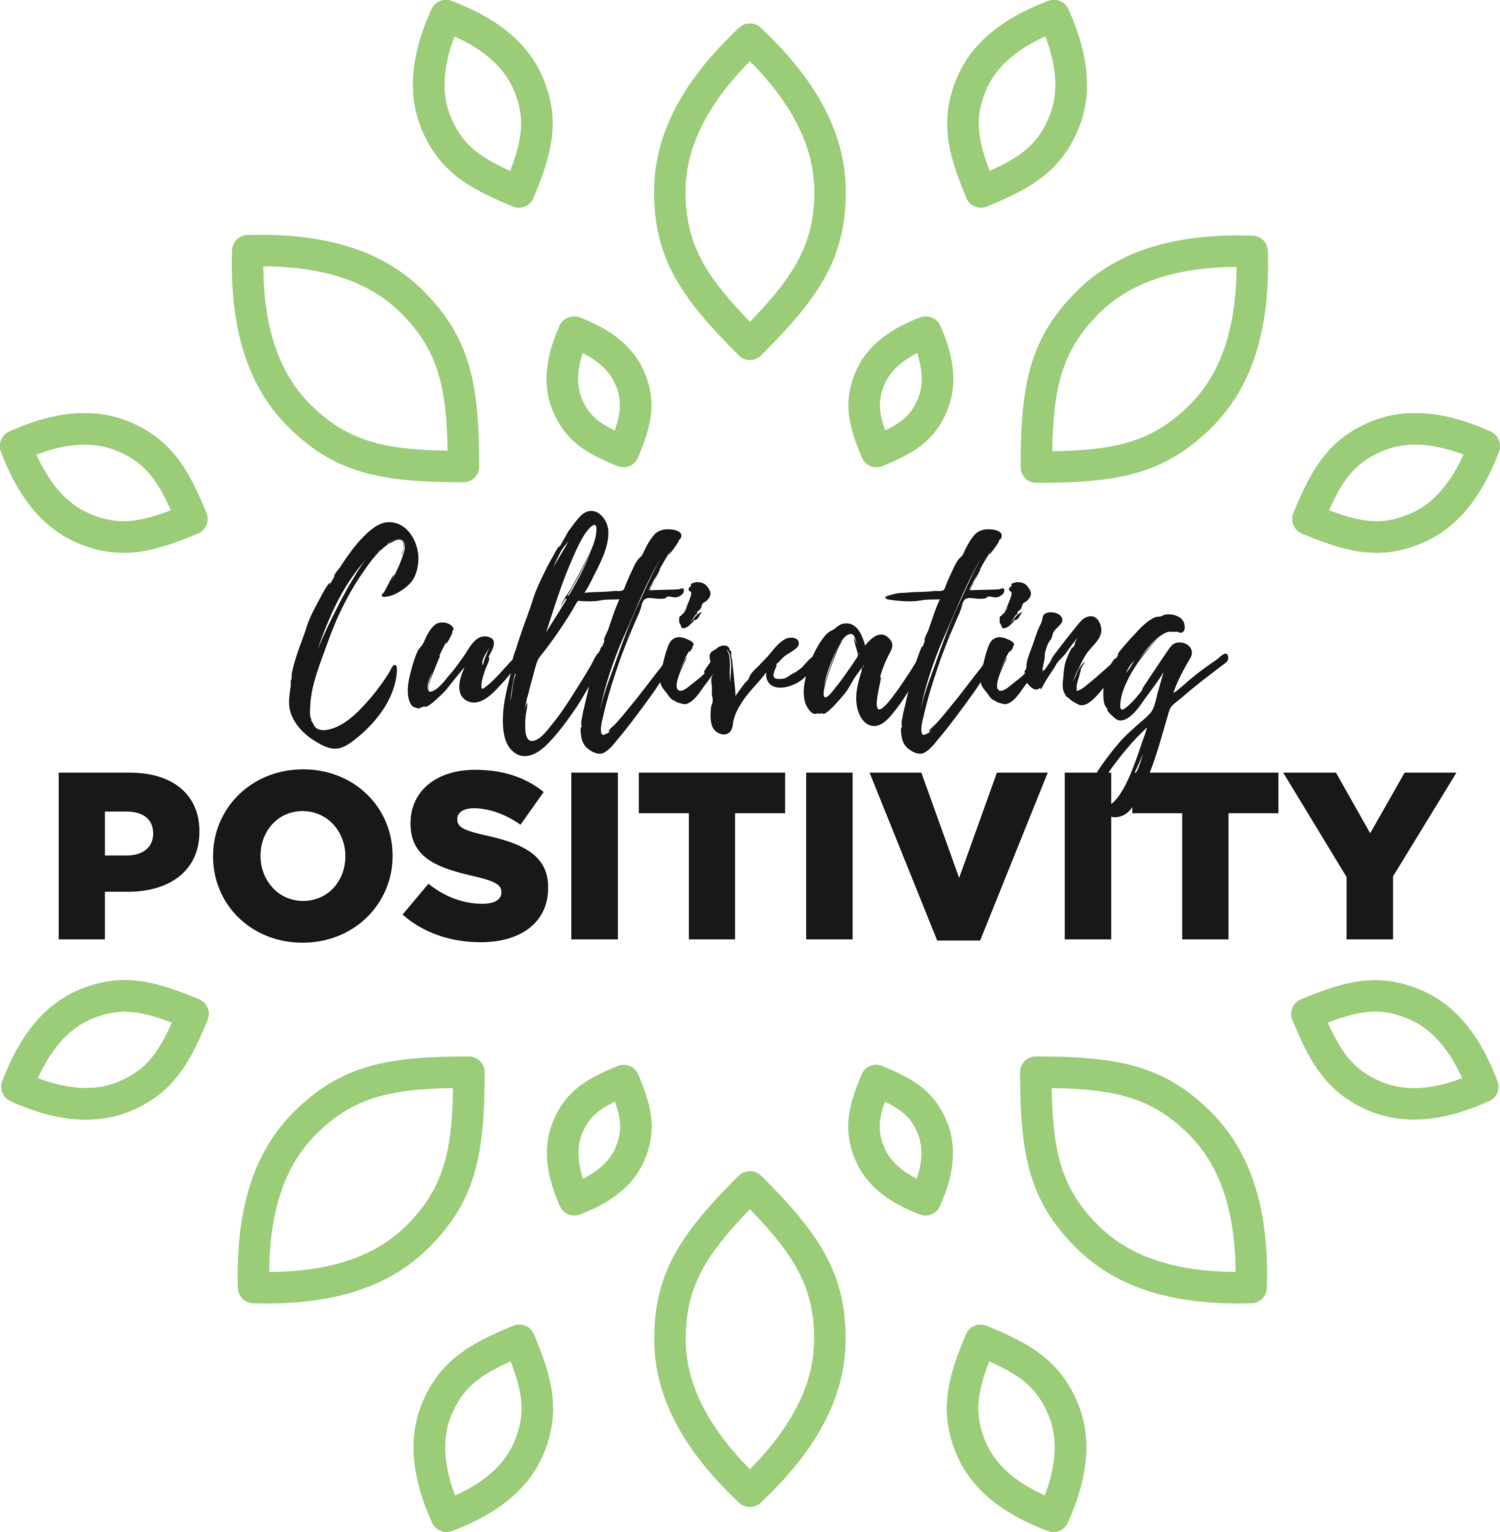 Cultivating Positivity™